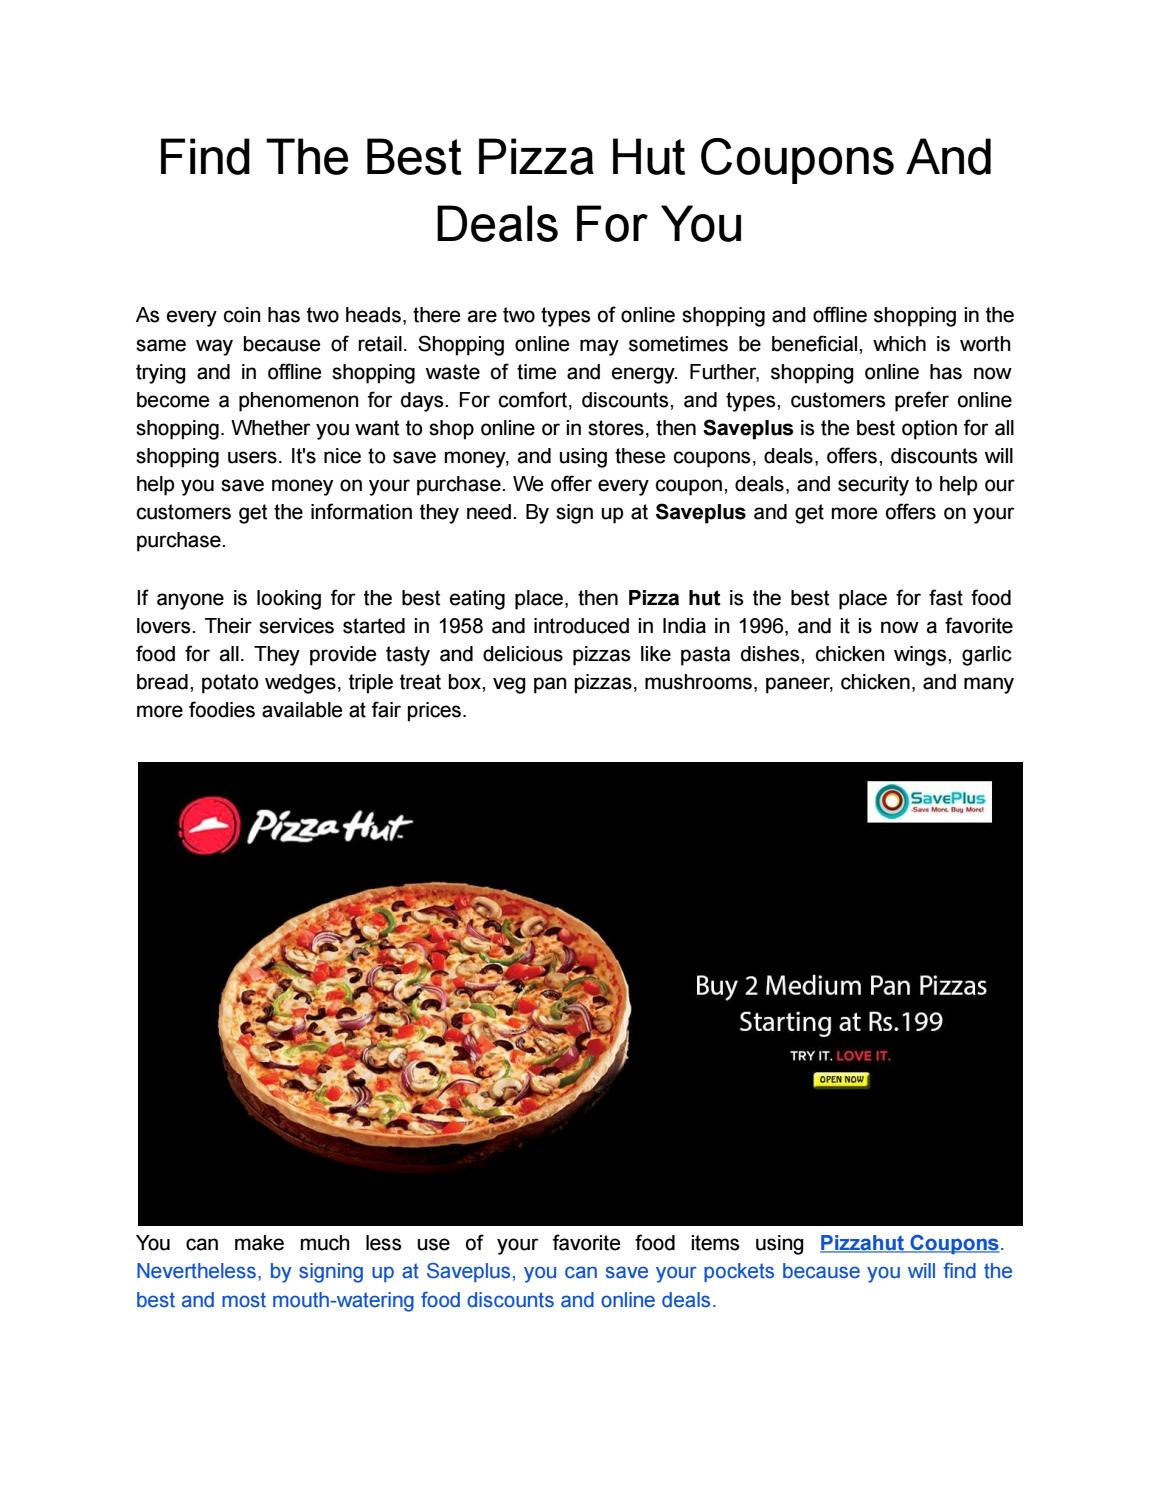 Find The Best Pizza Hut Coupons And Deals For You By Saveplus679 Issuu